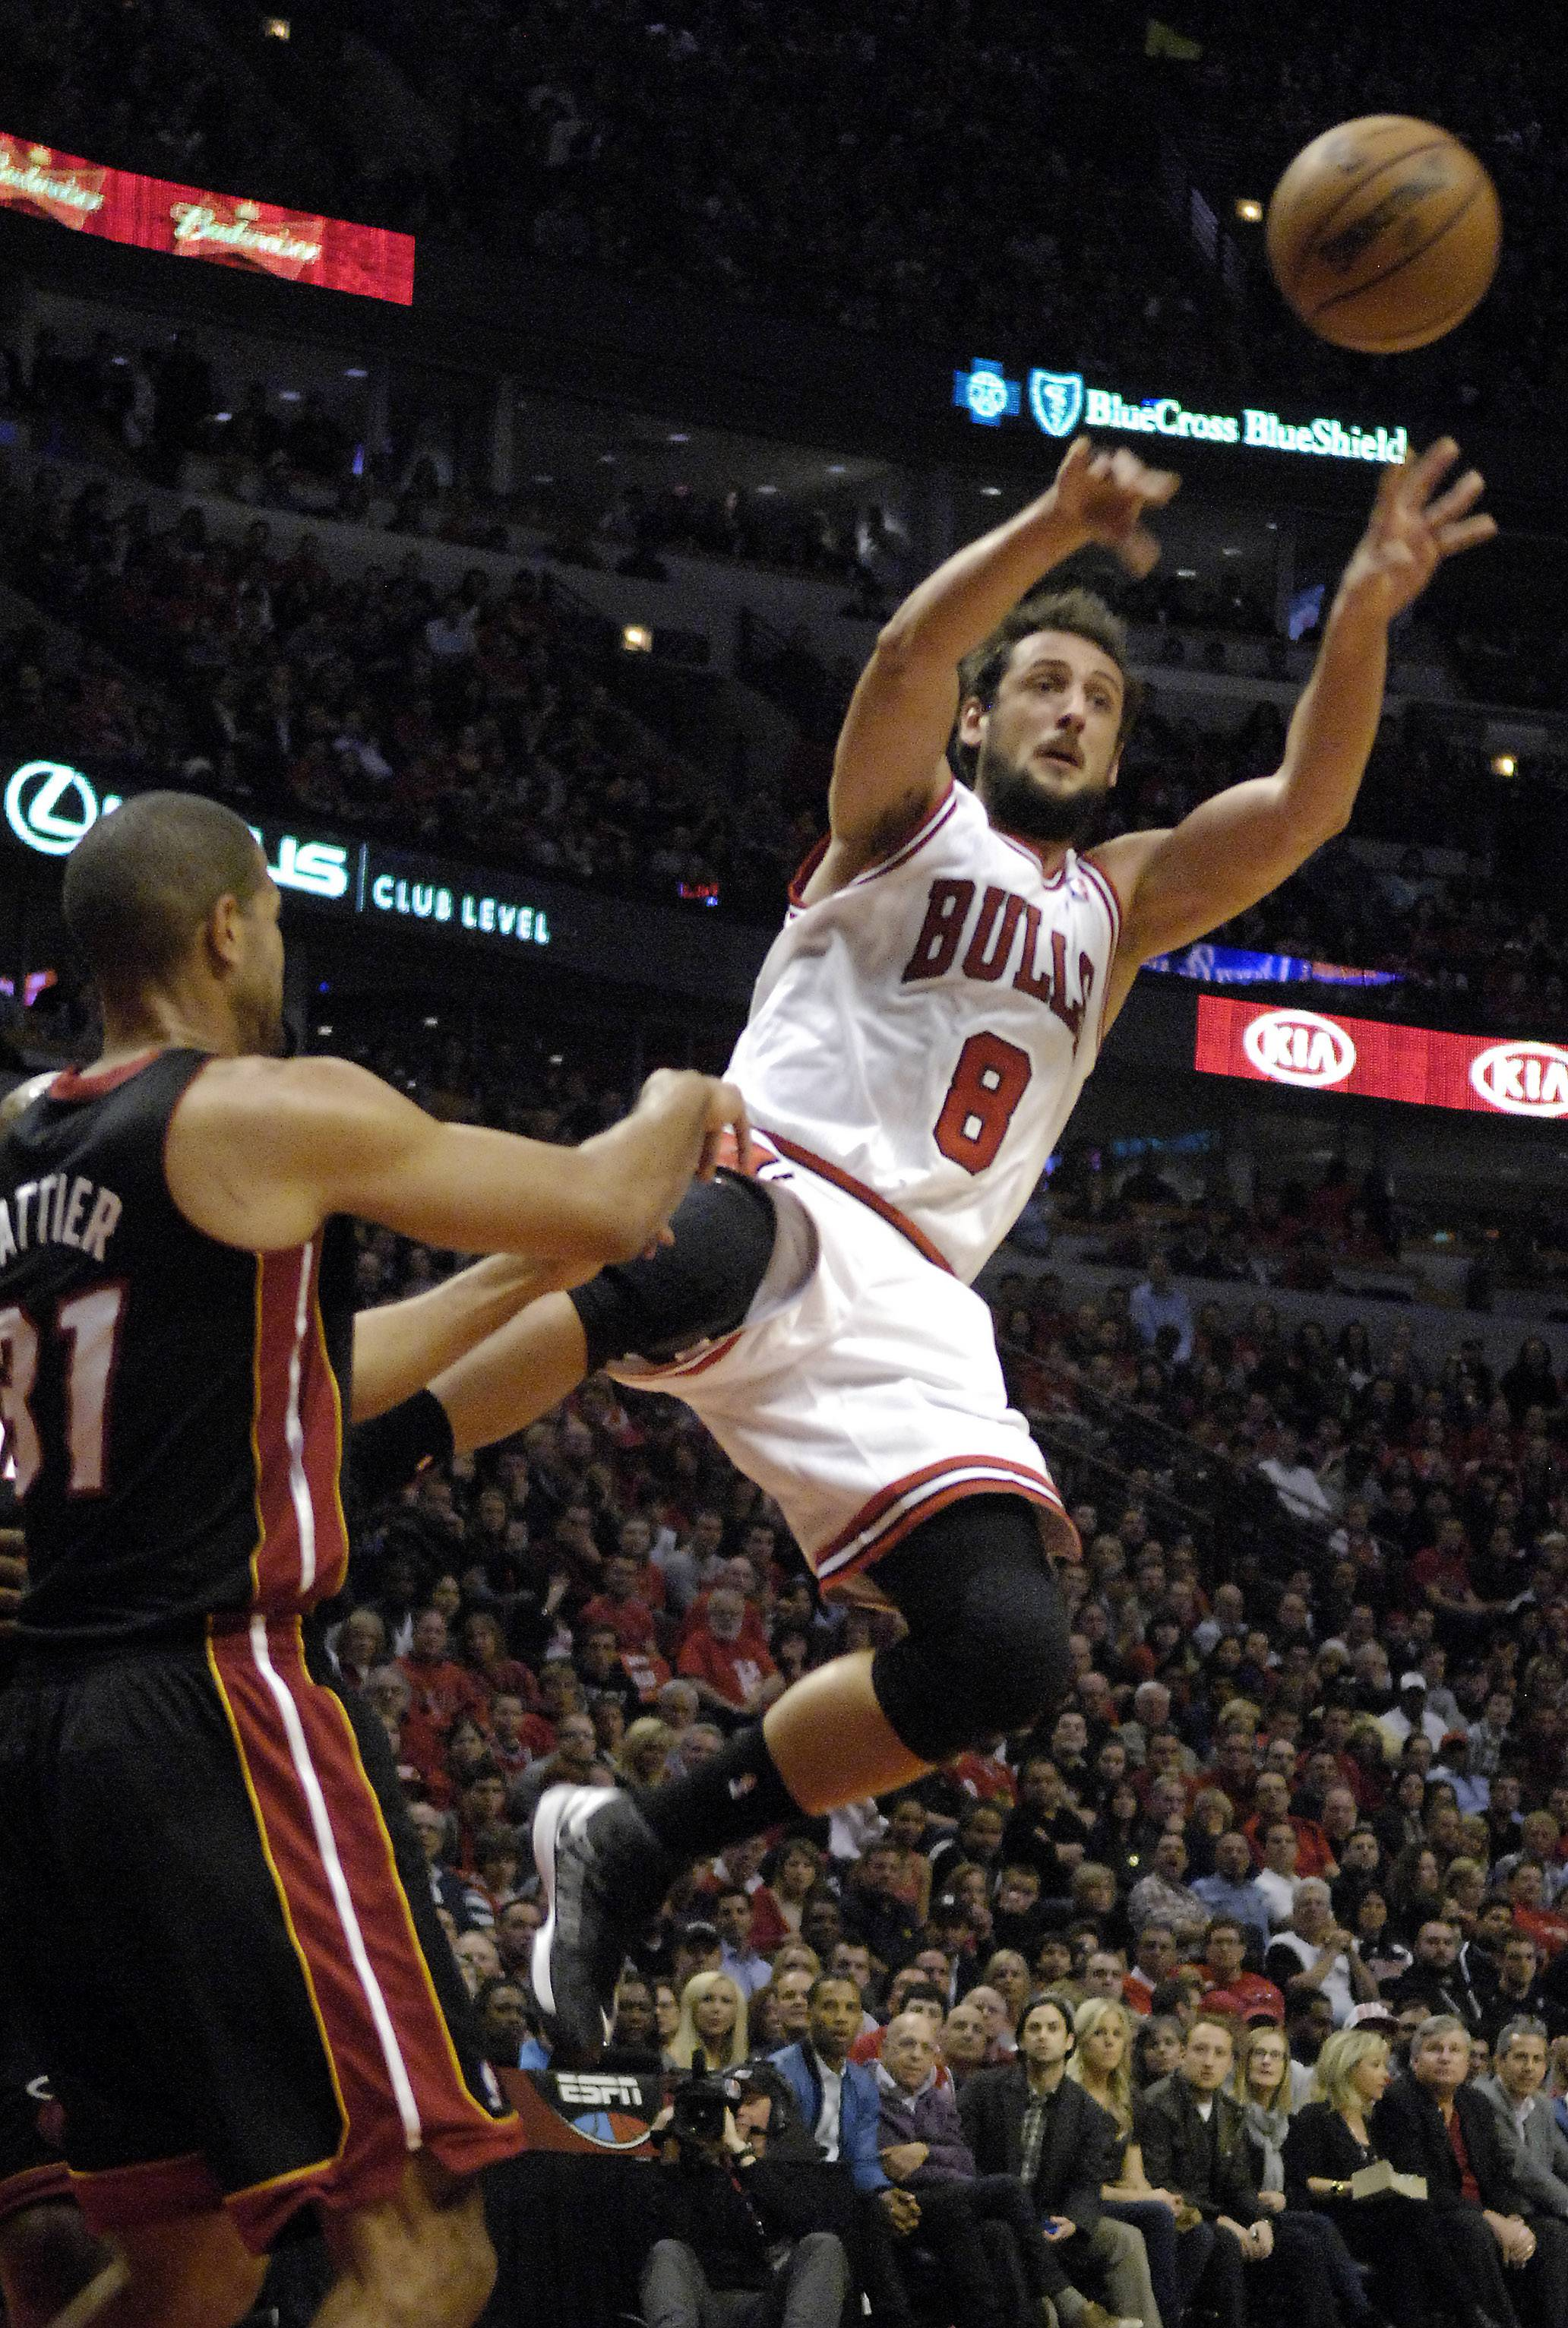 Chicago Bulls shooting guard Marco Belinelli (8) dishes out wide when his path to the basket gets blocked by Miami Heat small forward Shane Battier (31)  during Game 3 of an NBA basketball playoffs Eastern Conference semifinal on Friday, May 10, 2013, in Chicago. The heat won 104-94.